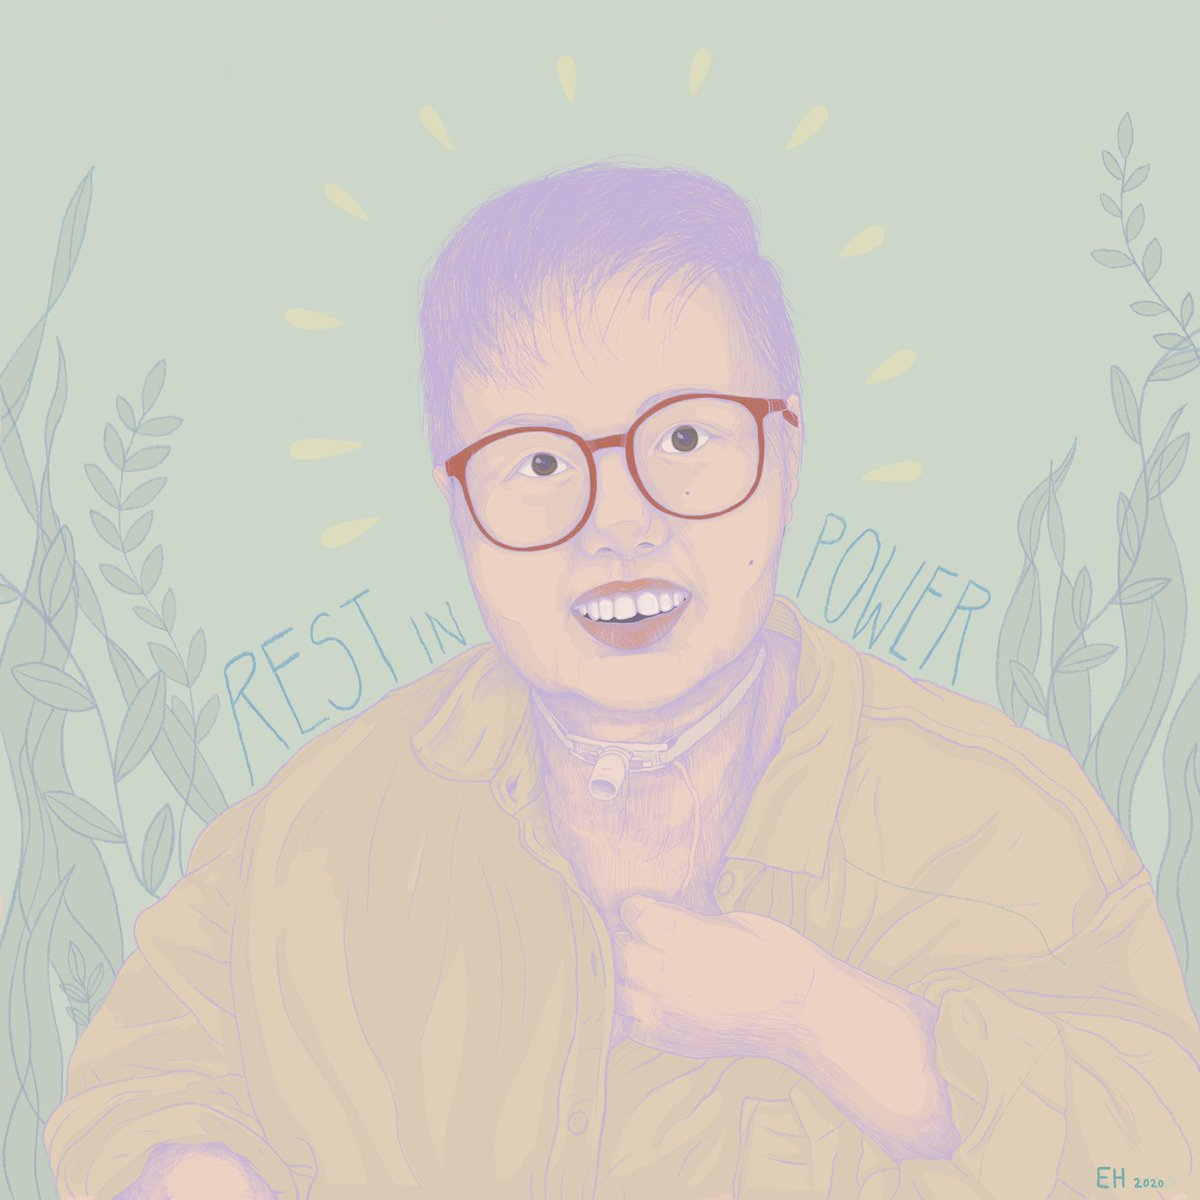 #StaceyTaughtUs to build community, to revel in joy, to show up for the people we love. Her work was transformative, as was her friendship. So many disabled folks know ourselves better because of Stacey.  (illustration by queer, disabled artist Em Haislip) <br>http://pic.twitter.com/s5JcoqREcv